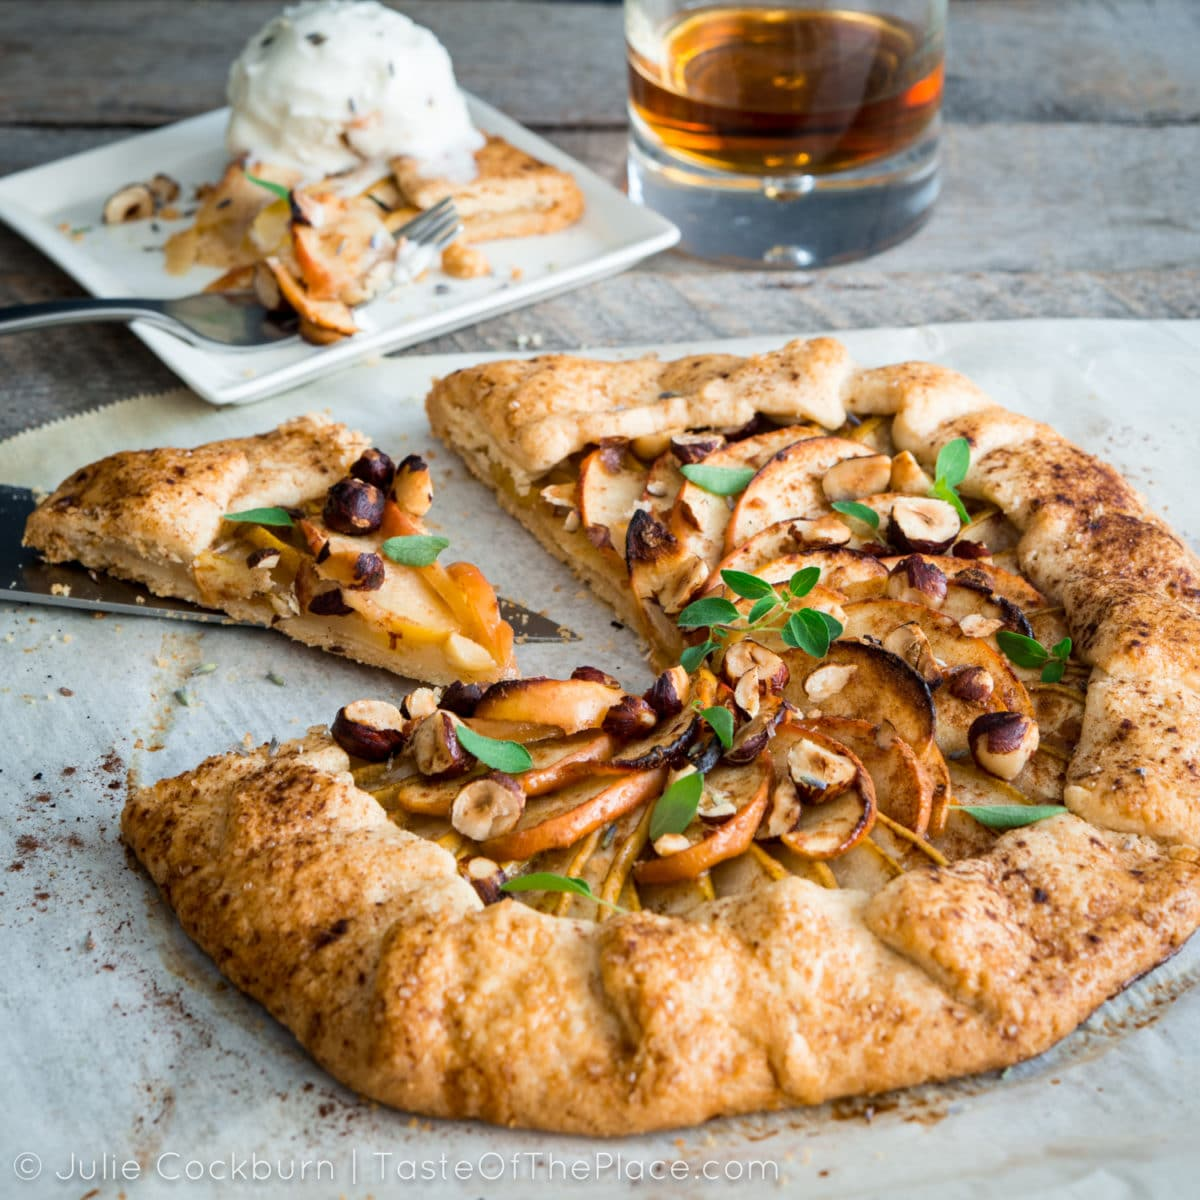 Pear and apple galette from TasteOfThePlace.com